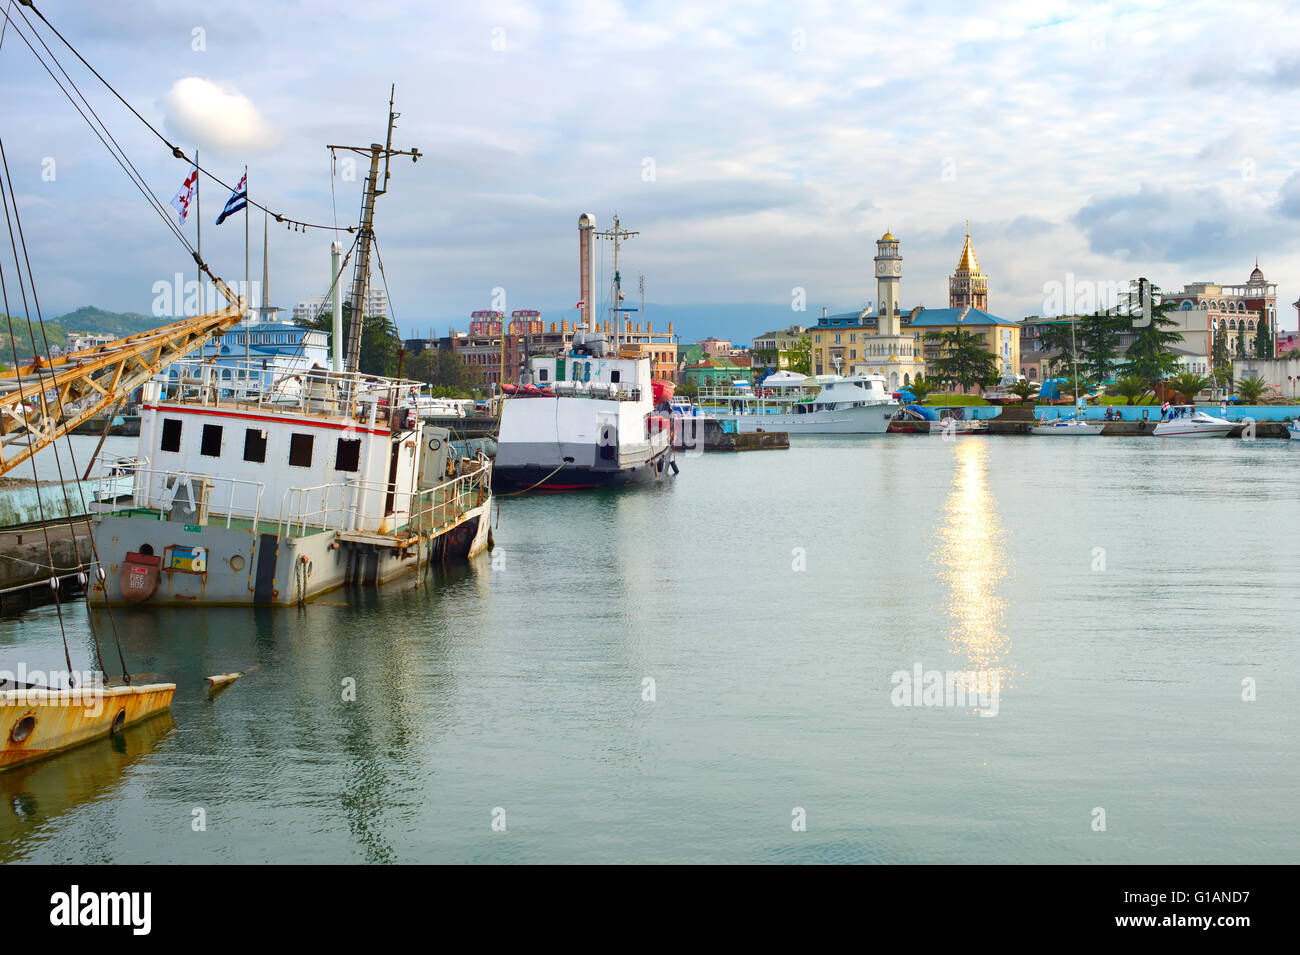 Batumi Sea Port with old and modern boats. Georgian Republic - Stock Image